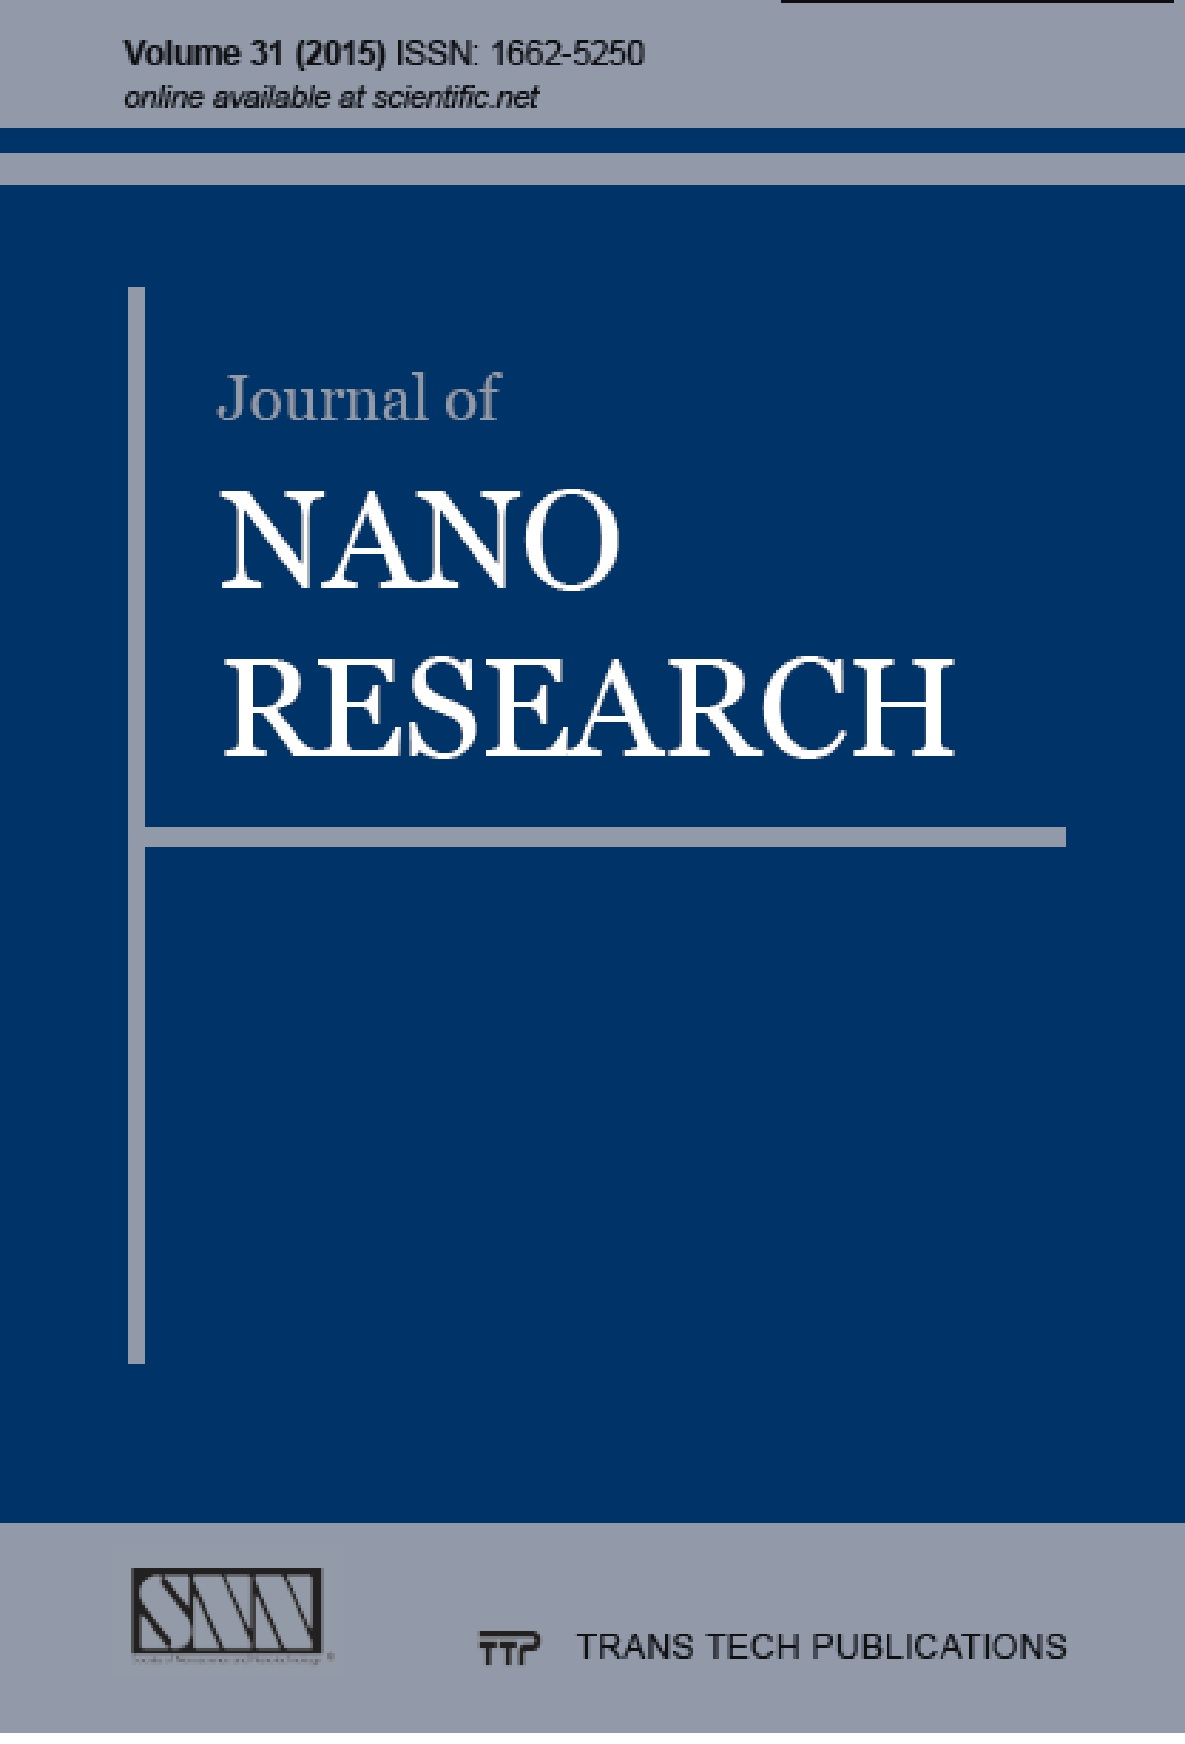 Journal of Nano Research Vol. 31